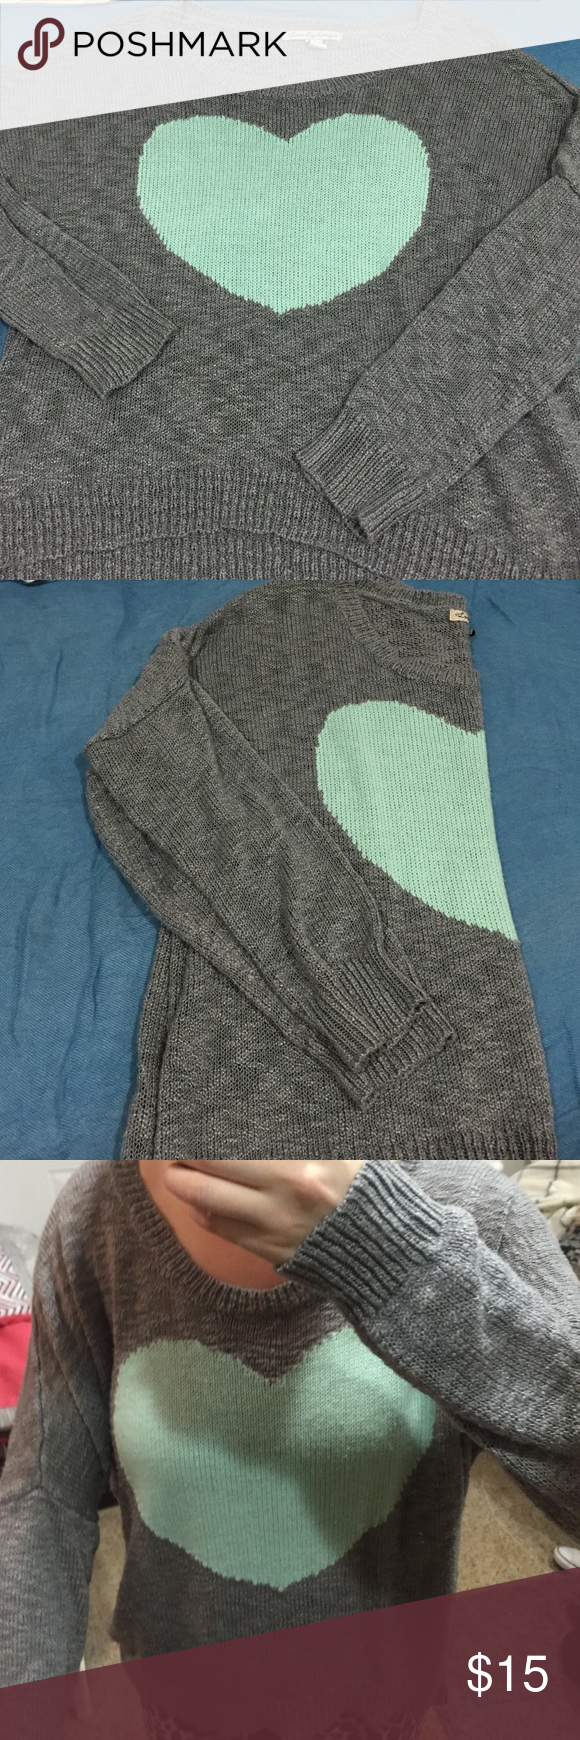 Heart sweater Gray and teal heart sweater. Love by Design Sweaters Crew & Scoop Necks